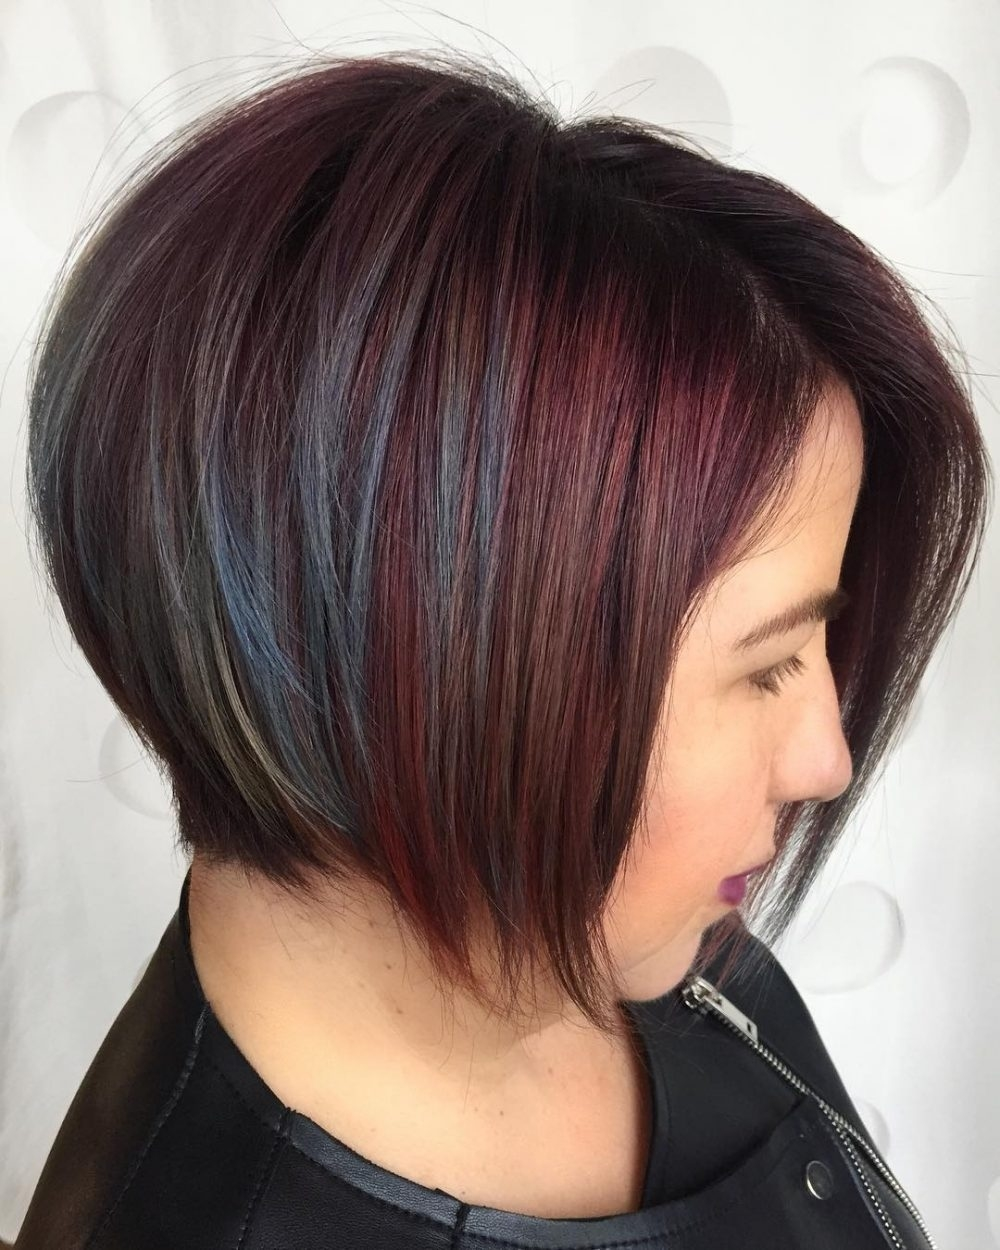 34 Greatest Short Haircuts And Hairstyles For Thick Hair For 2018 for Edgy Haircuts For Thick Hair